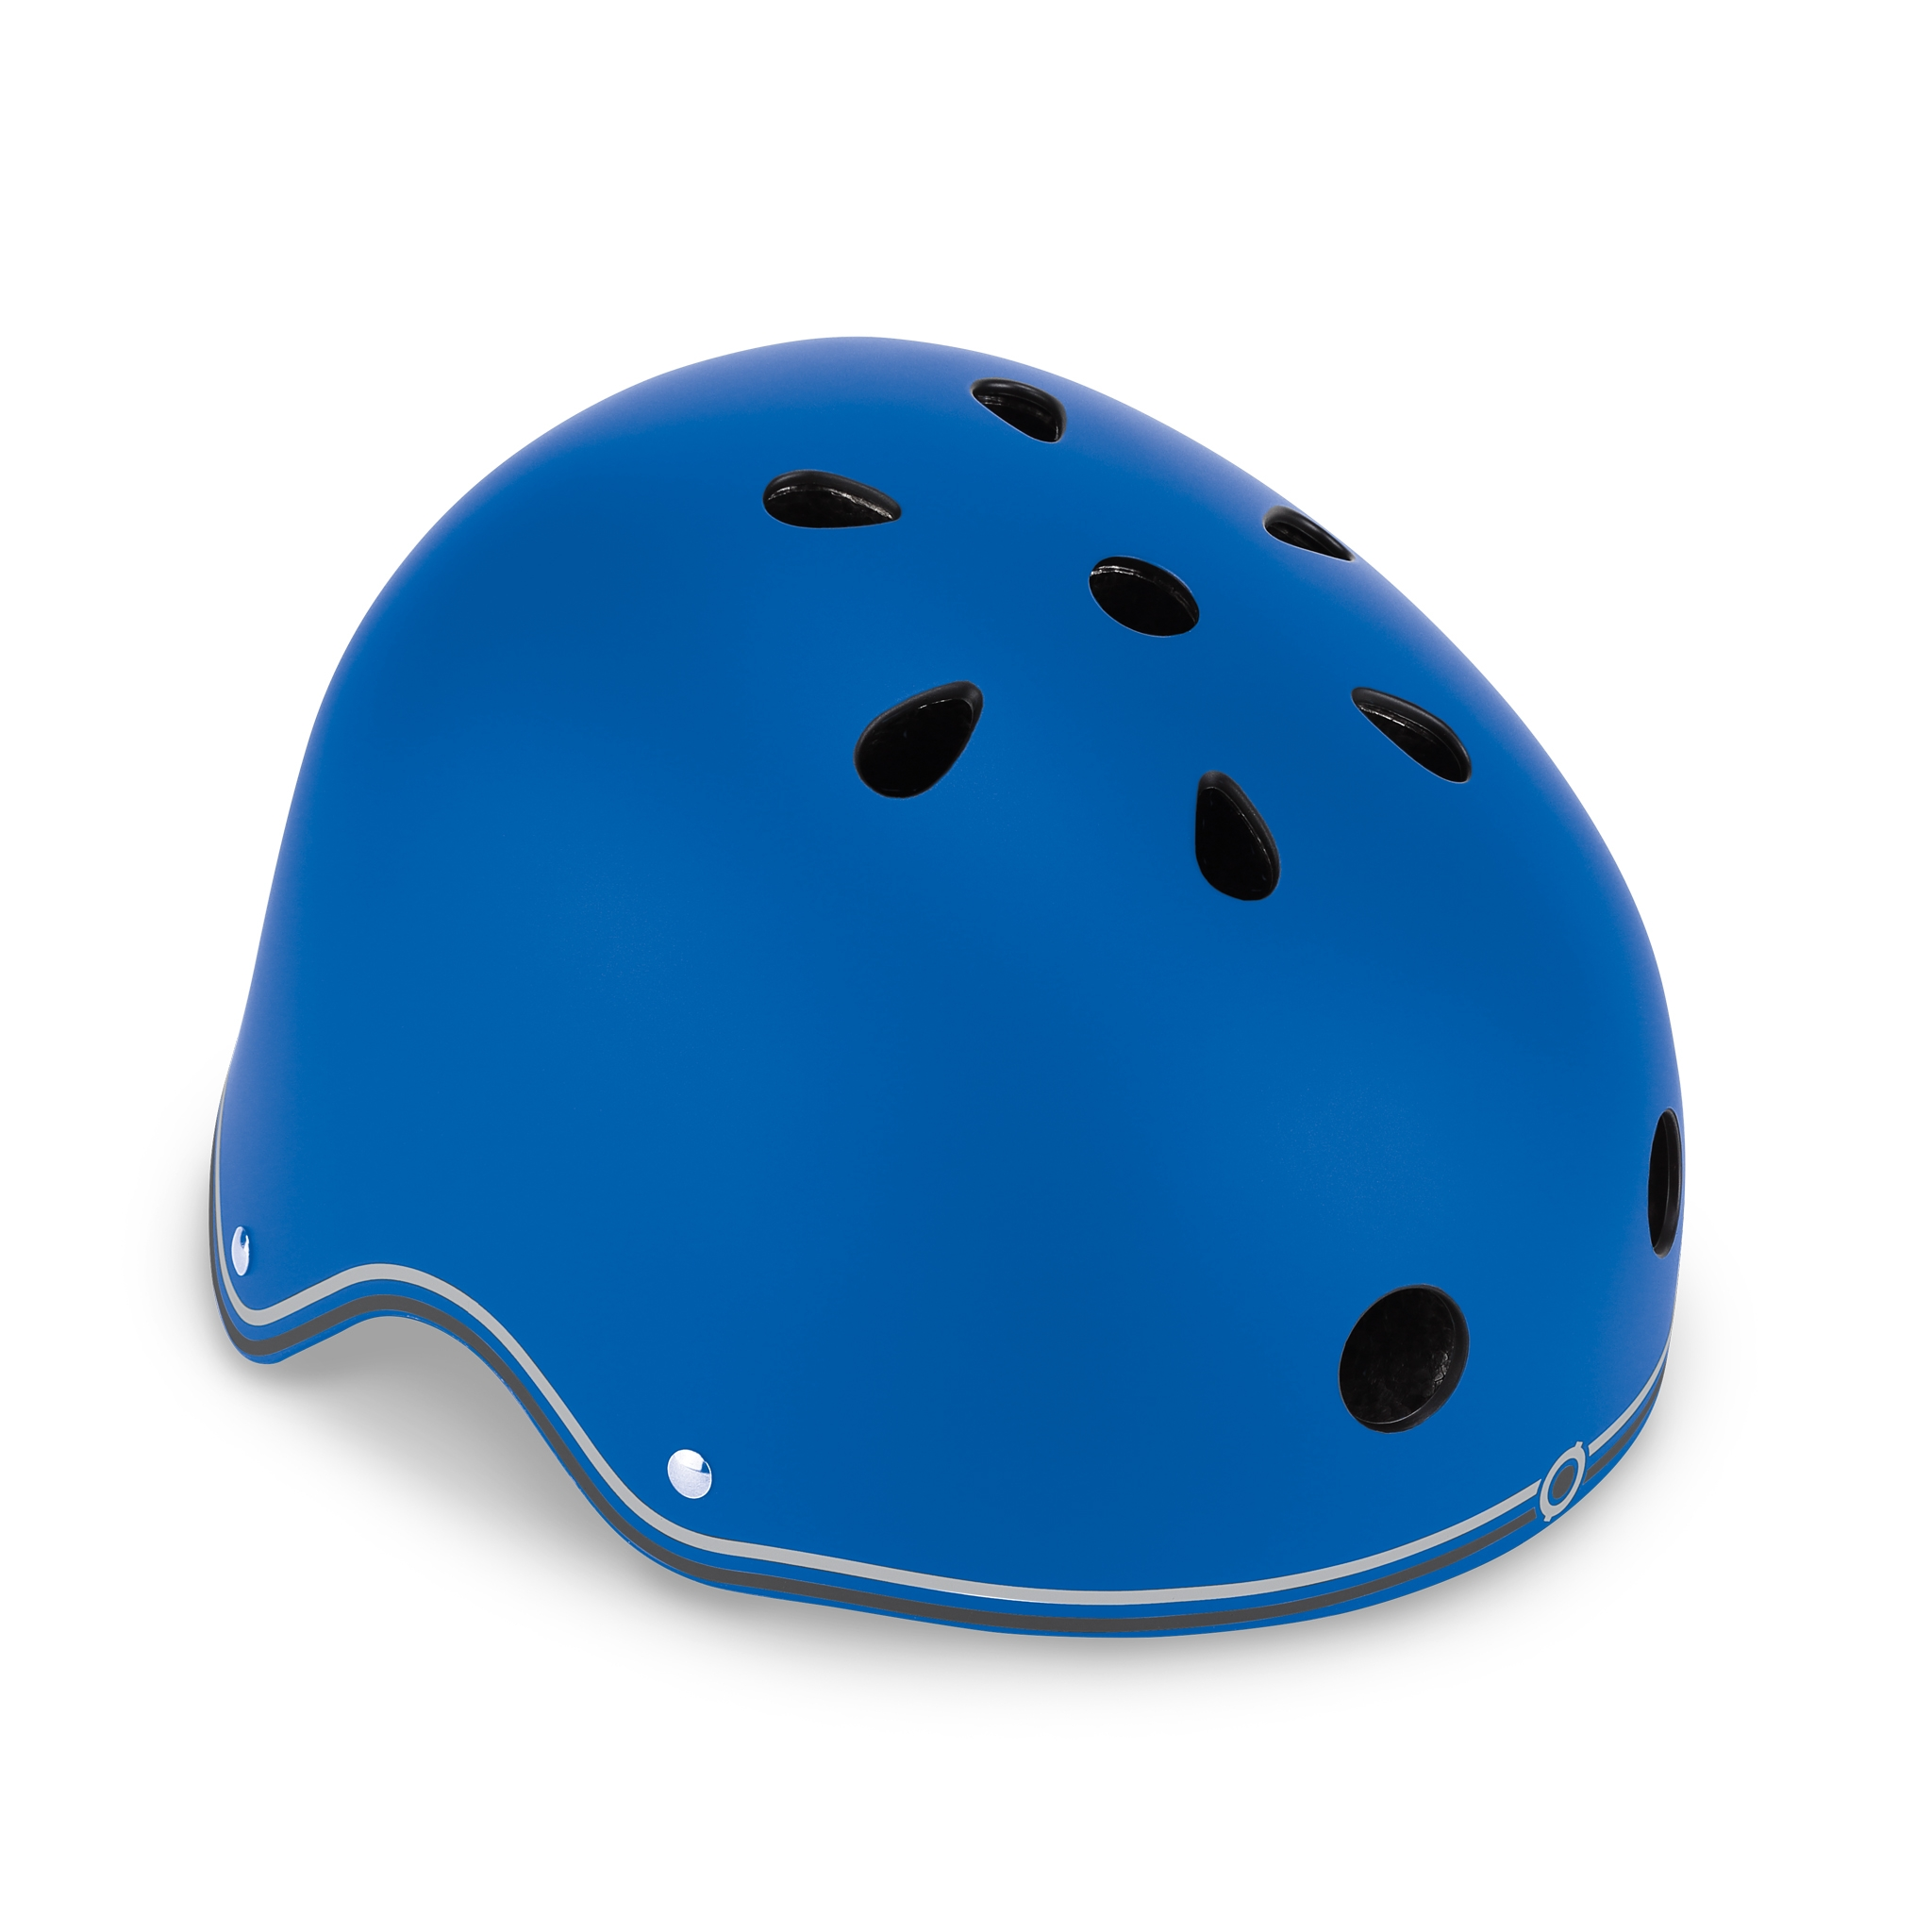 PRIMO-helmets-scooter-helmets-for-kids-in-mold-polycarbonate-outer-shell-navy-blue 0